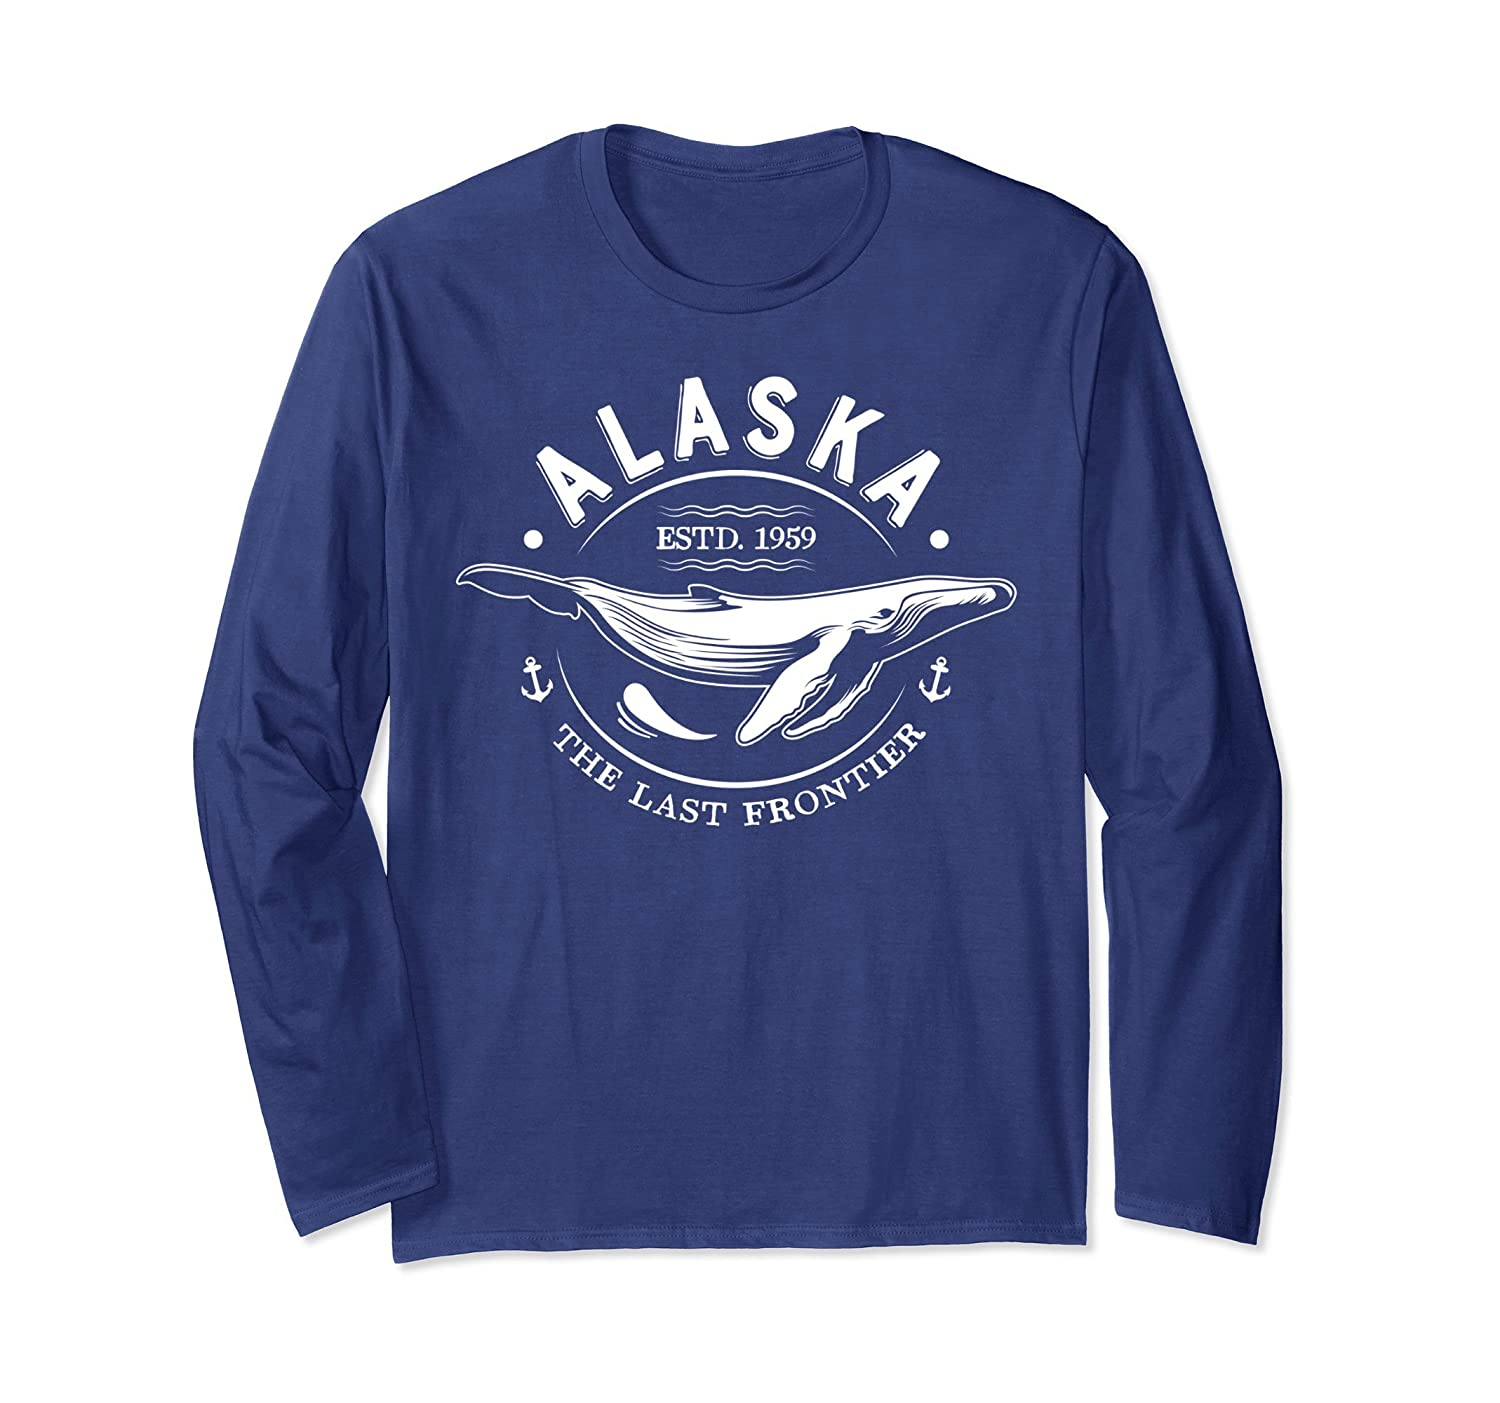 Alaska T Shirt The Last Frontier Whale Home Cruise Gifts Tee-Awarplus